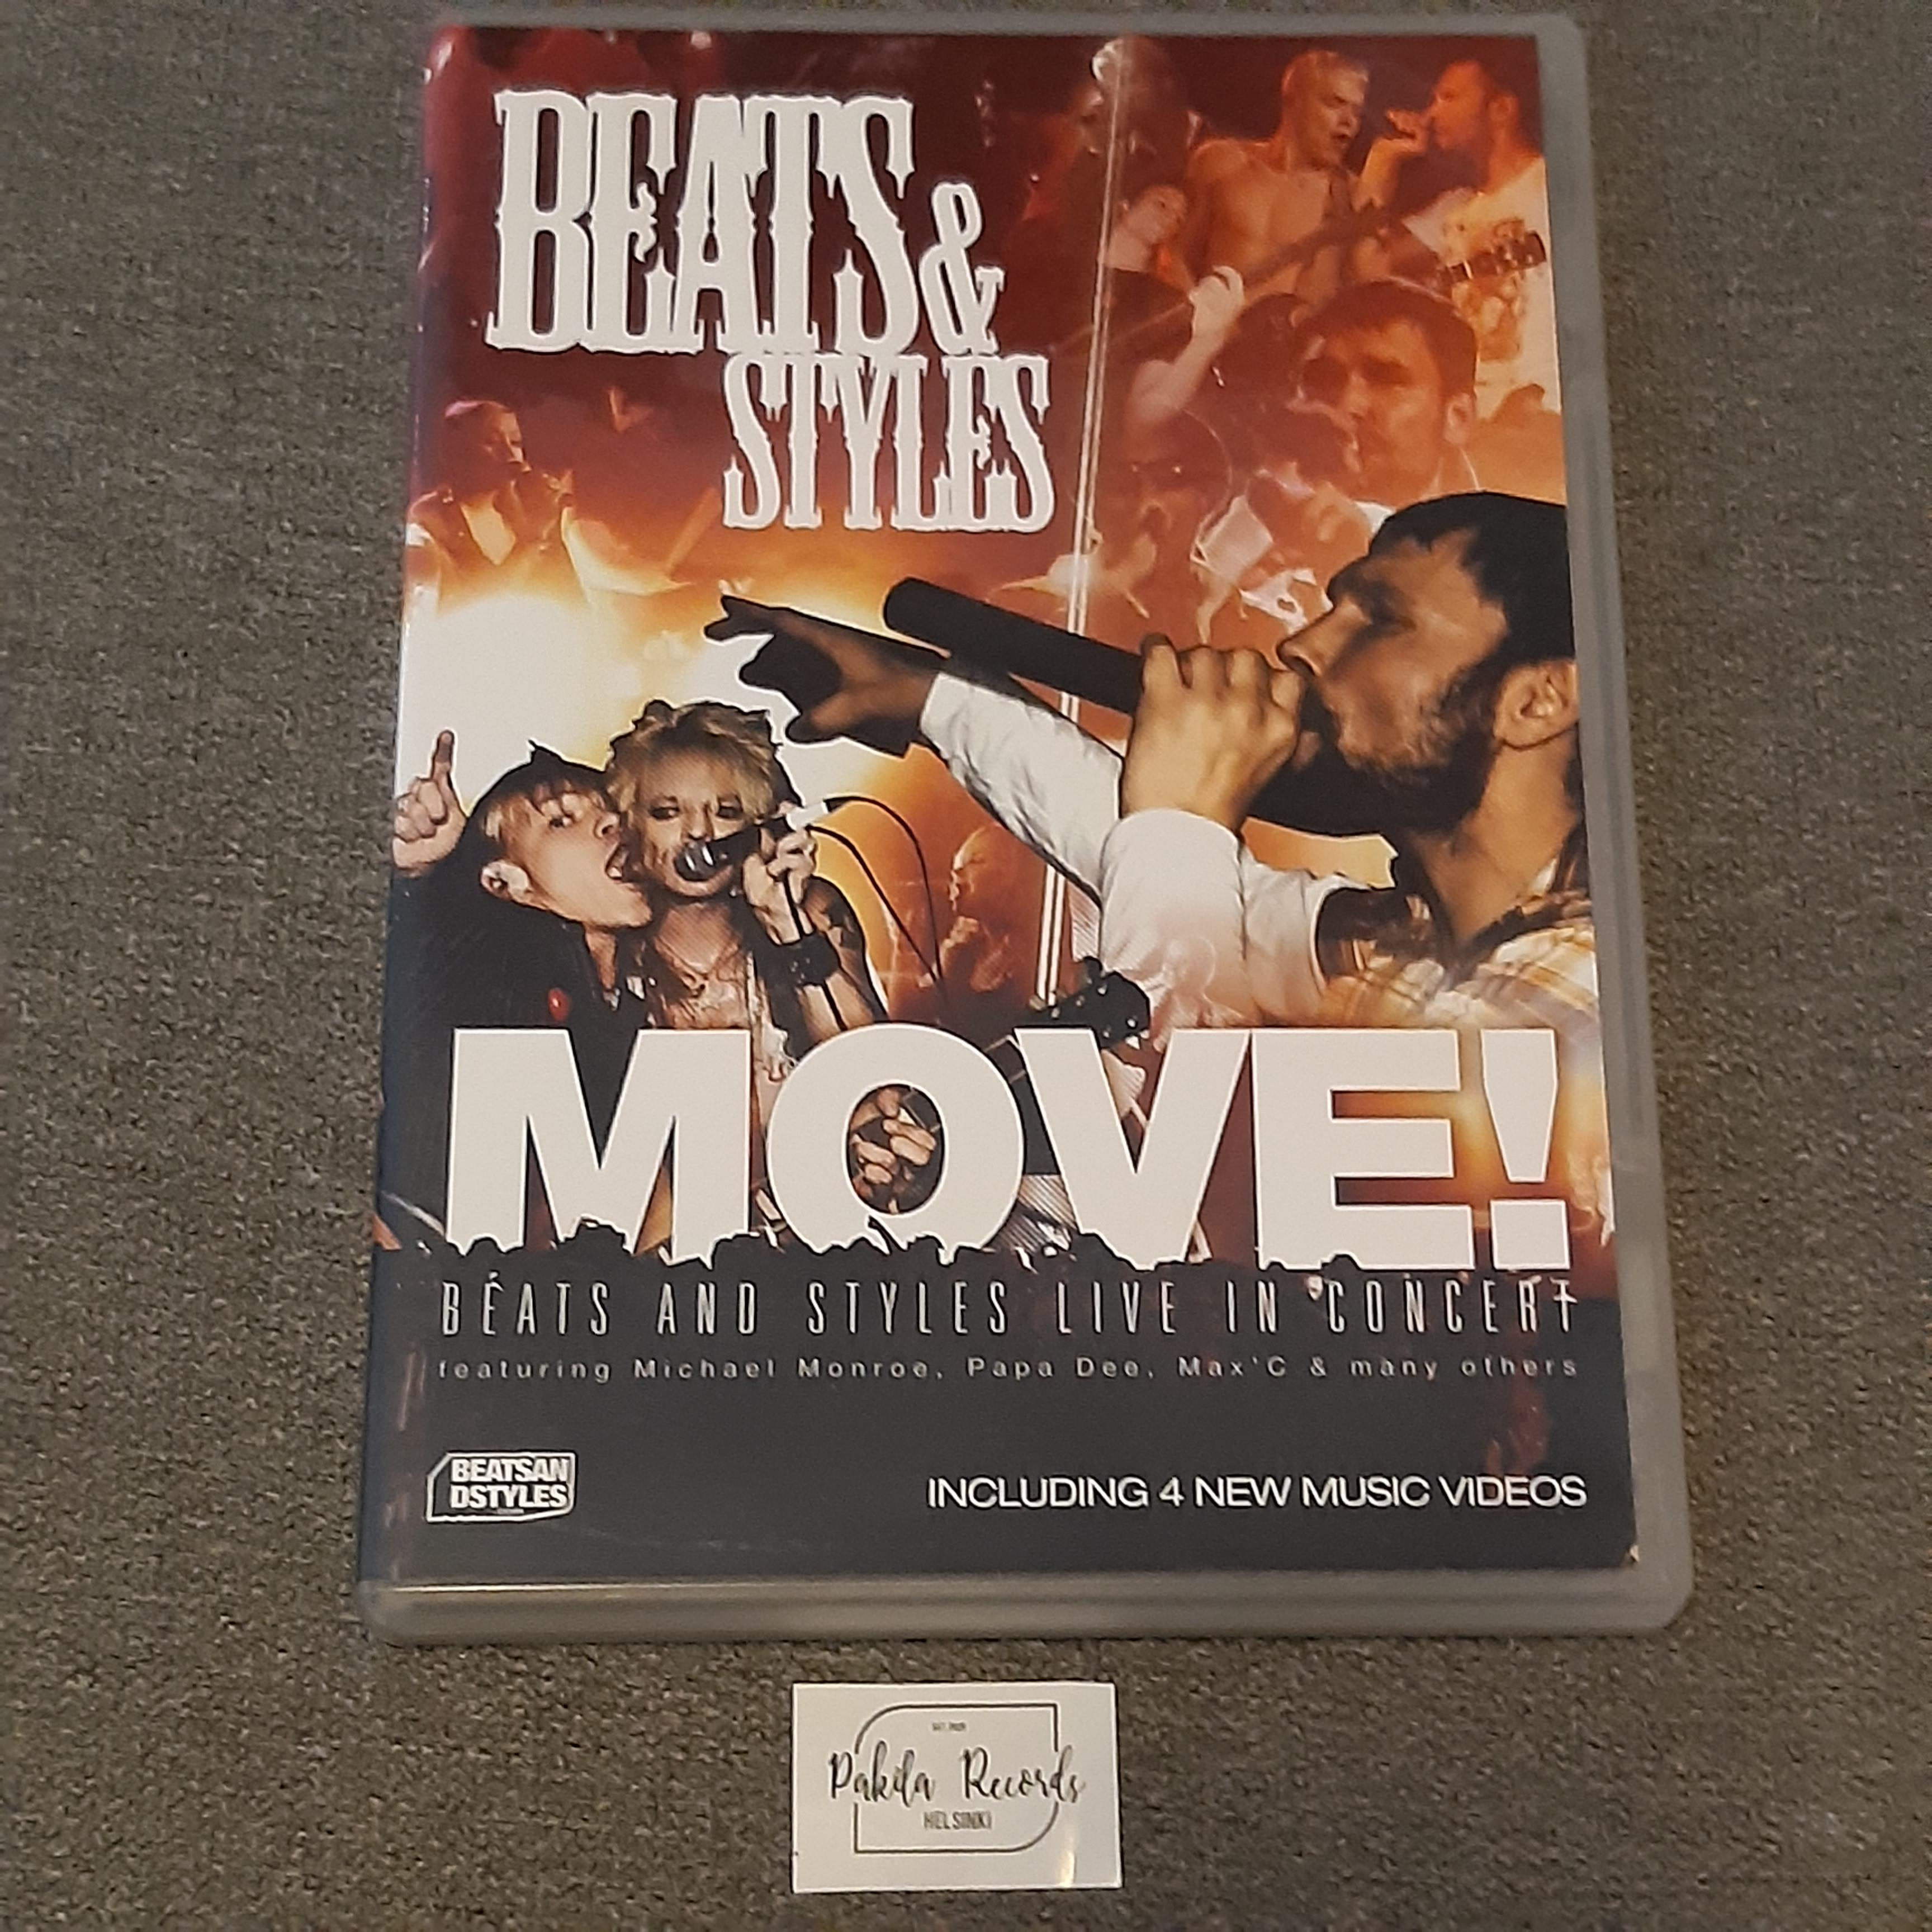 Beats & Styles - Move! Beats And Styles Live In Concert - DVD